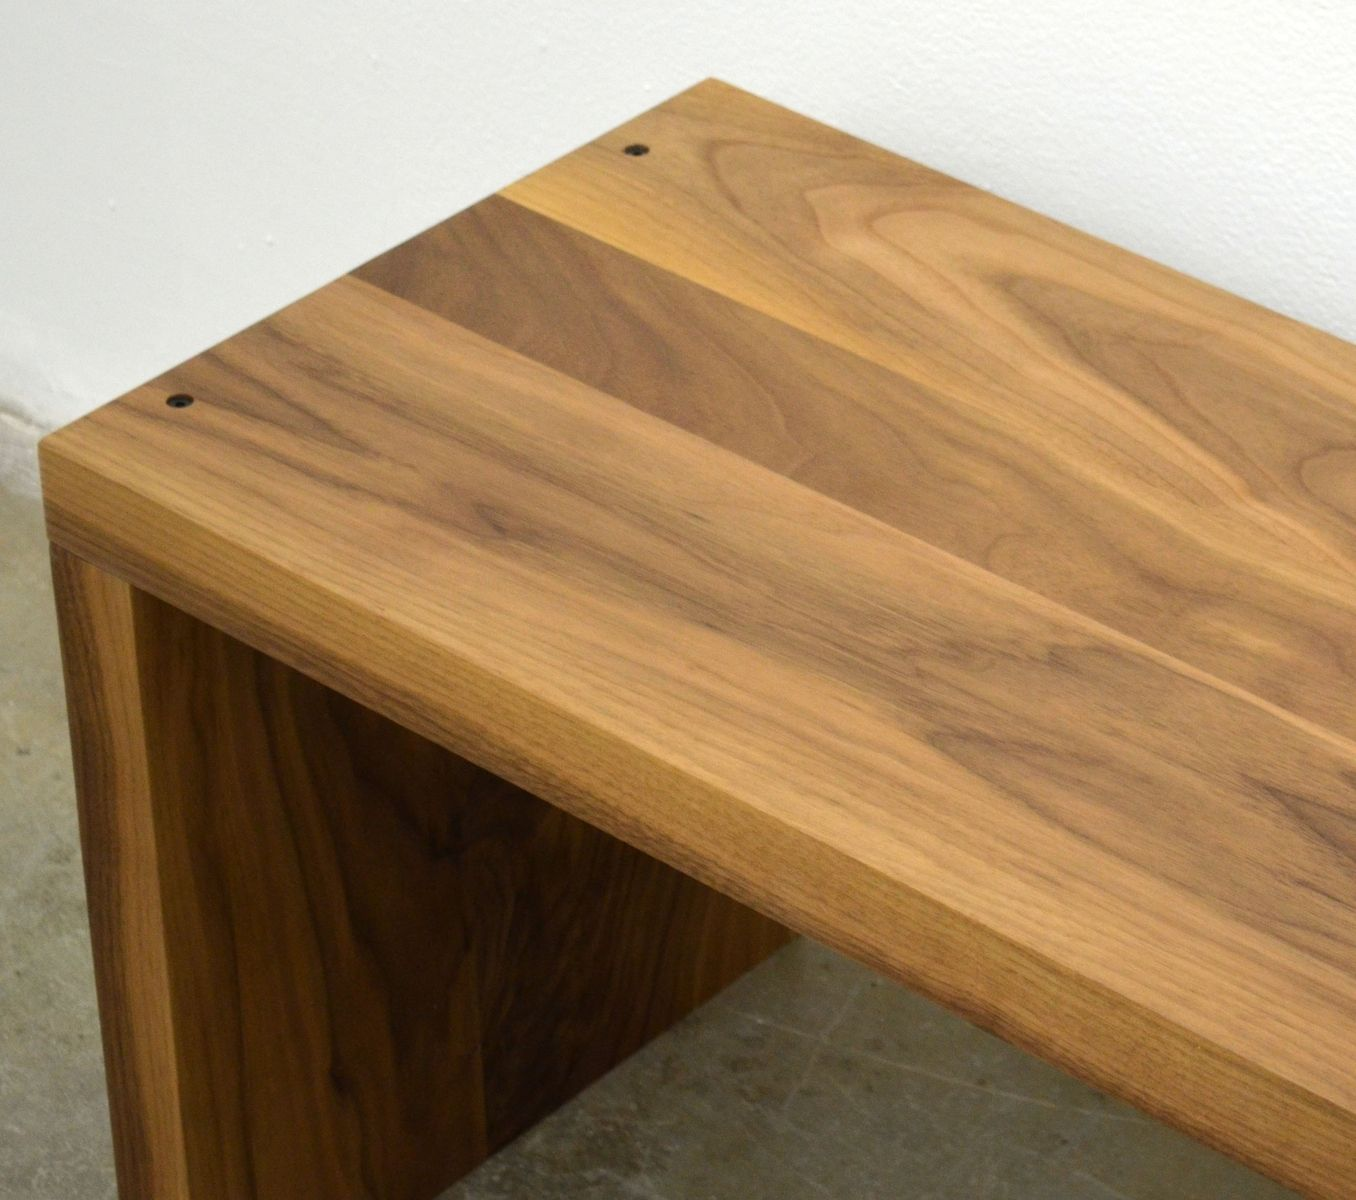 Walnut Wood Furniture ~ Custom made modern solid walnut wood bench by fabitecture